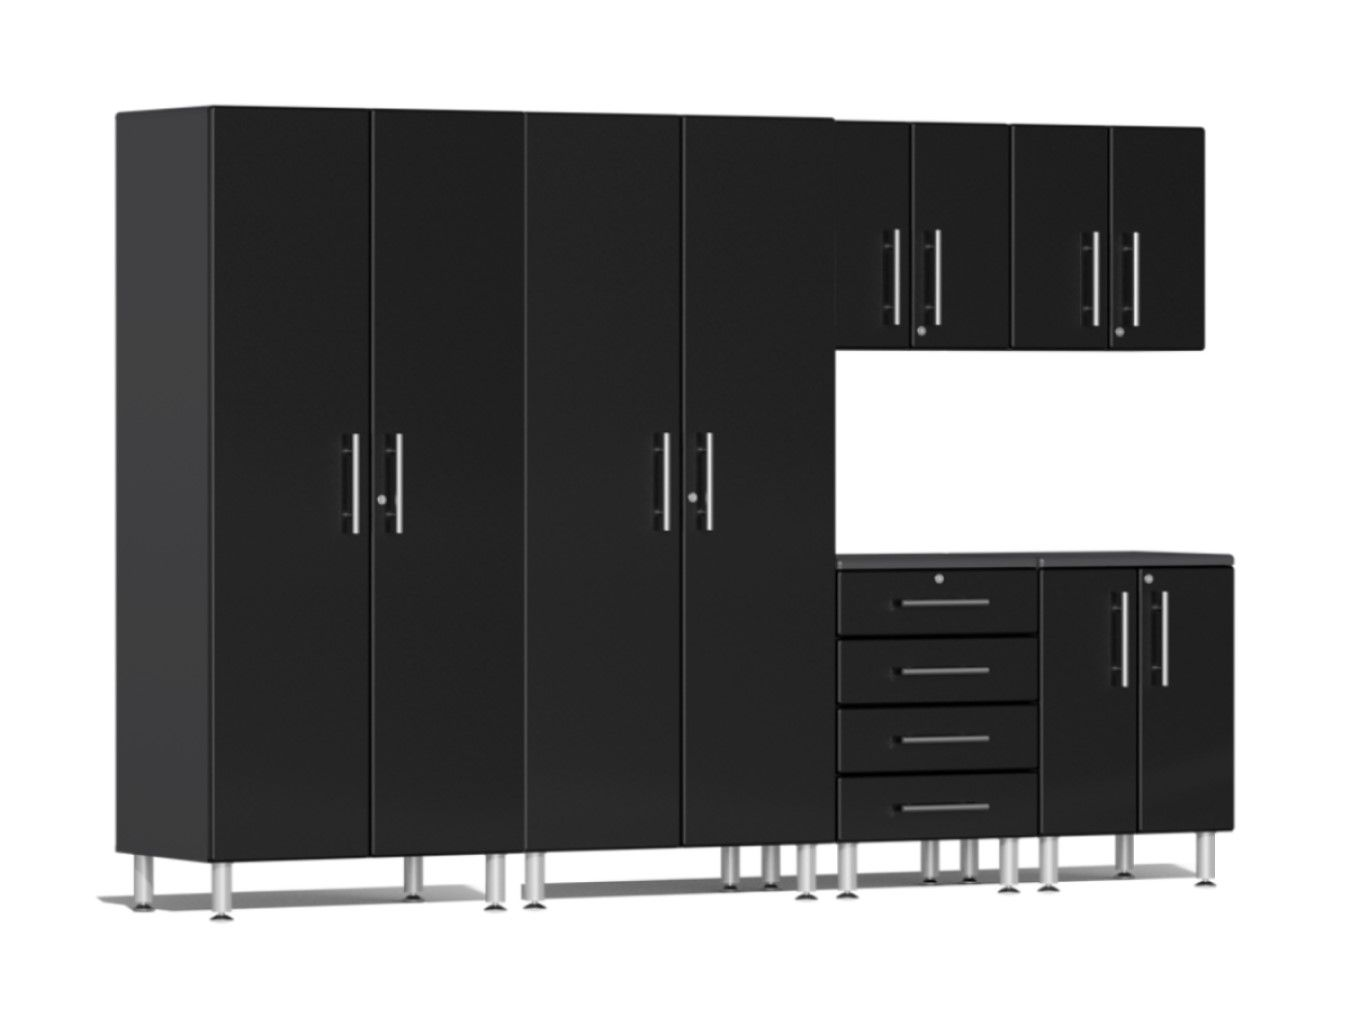 """Ulti-MATE Garage 2.0 Series 6-Piece Kit in Black Metallic UG23060B Ulti-MATE Garage 2.0 Series takes the back-to-back Consumers Digest awarded """"Best Buy"""" cabinet line features to the next level. Six (6) piece kit offers a popular mix of oversized cabinets provides industrial strength 1-inch thick shelves, contemporary style that will have you stand out from crowd and more.  UG23060B Features: Strong 3/4"""